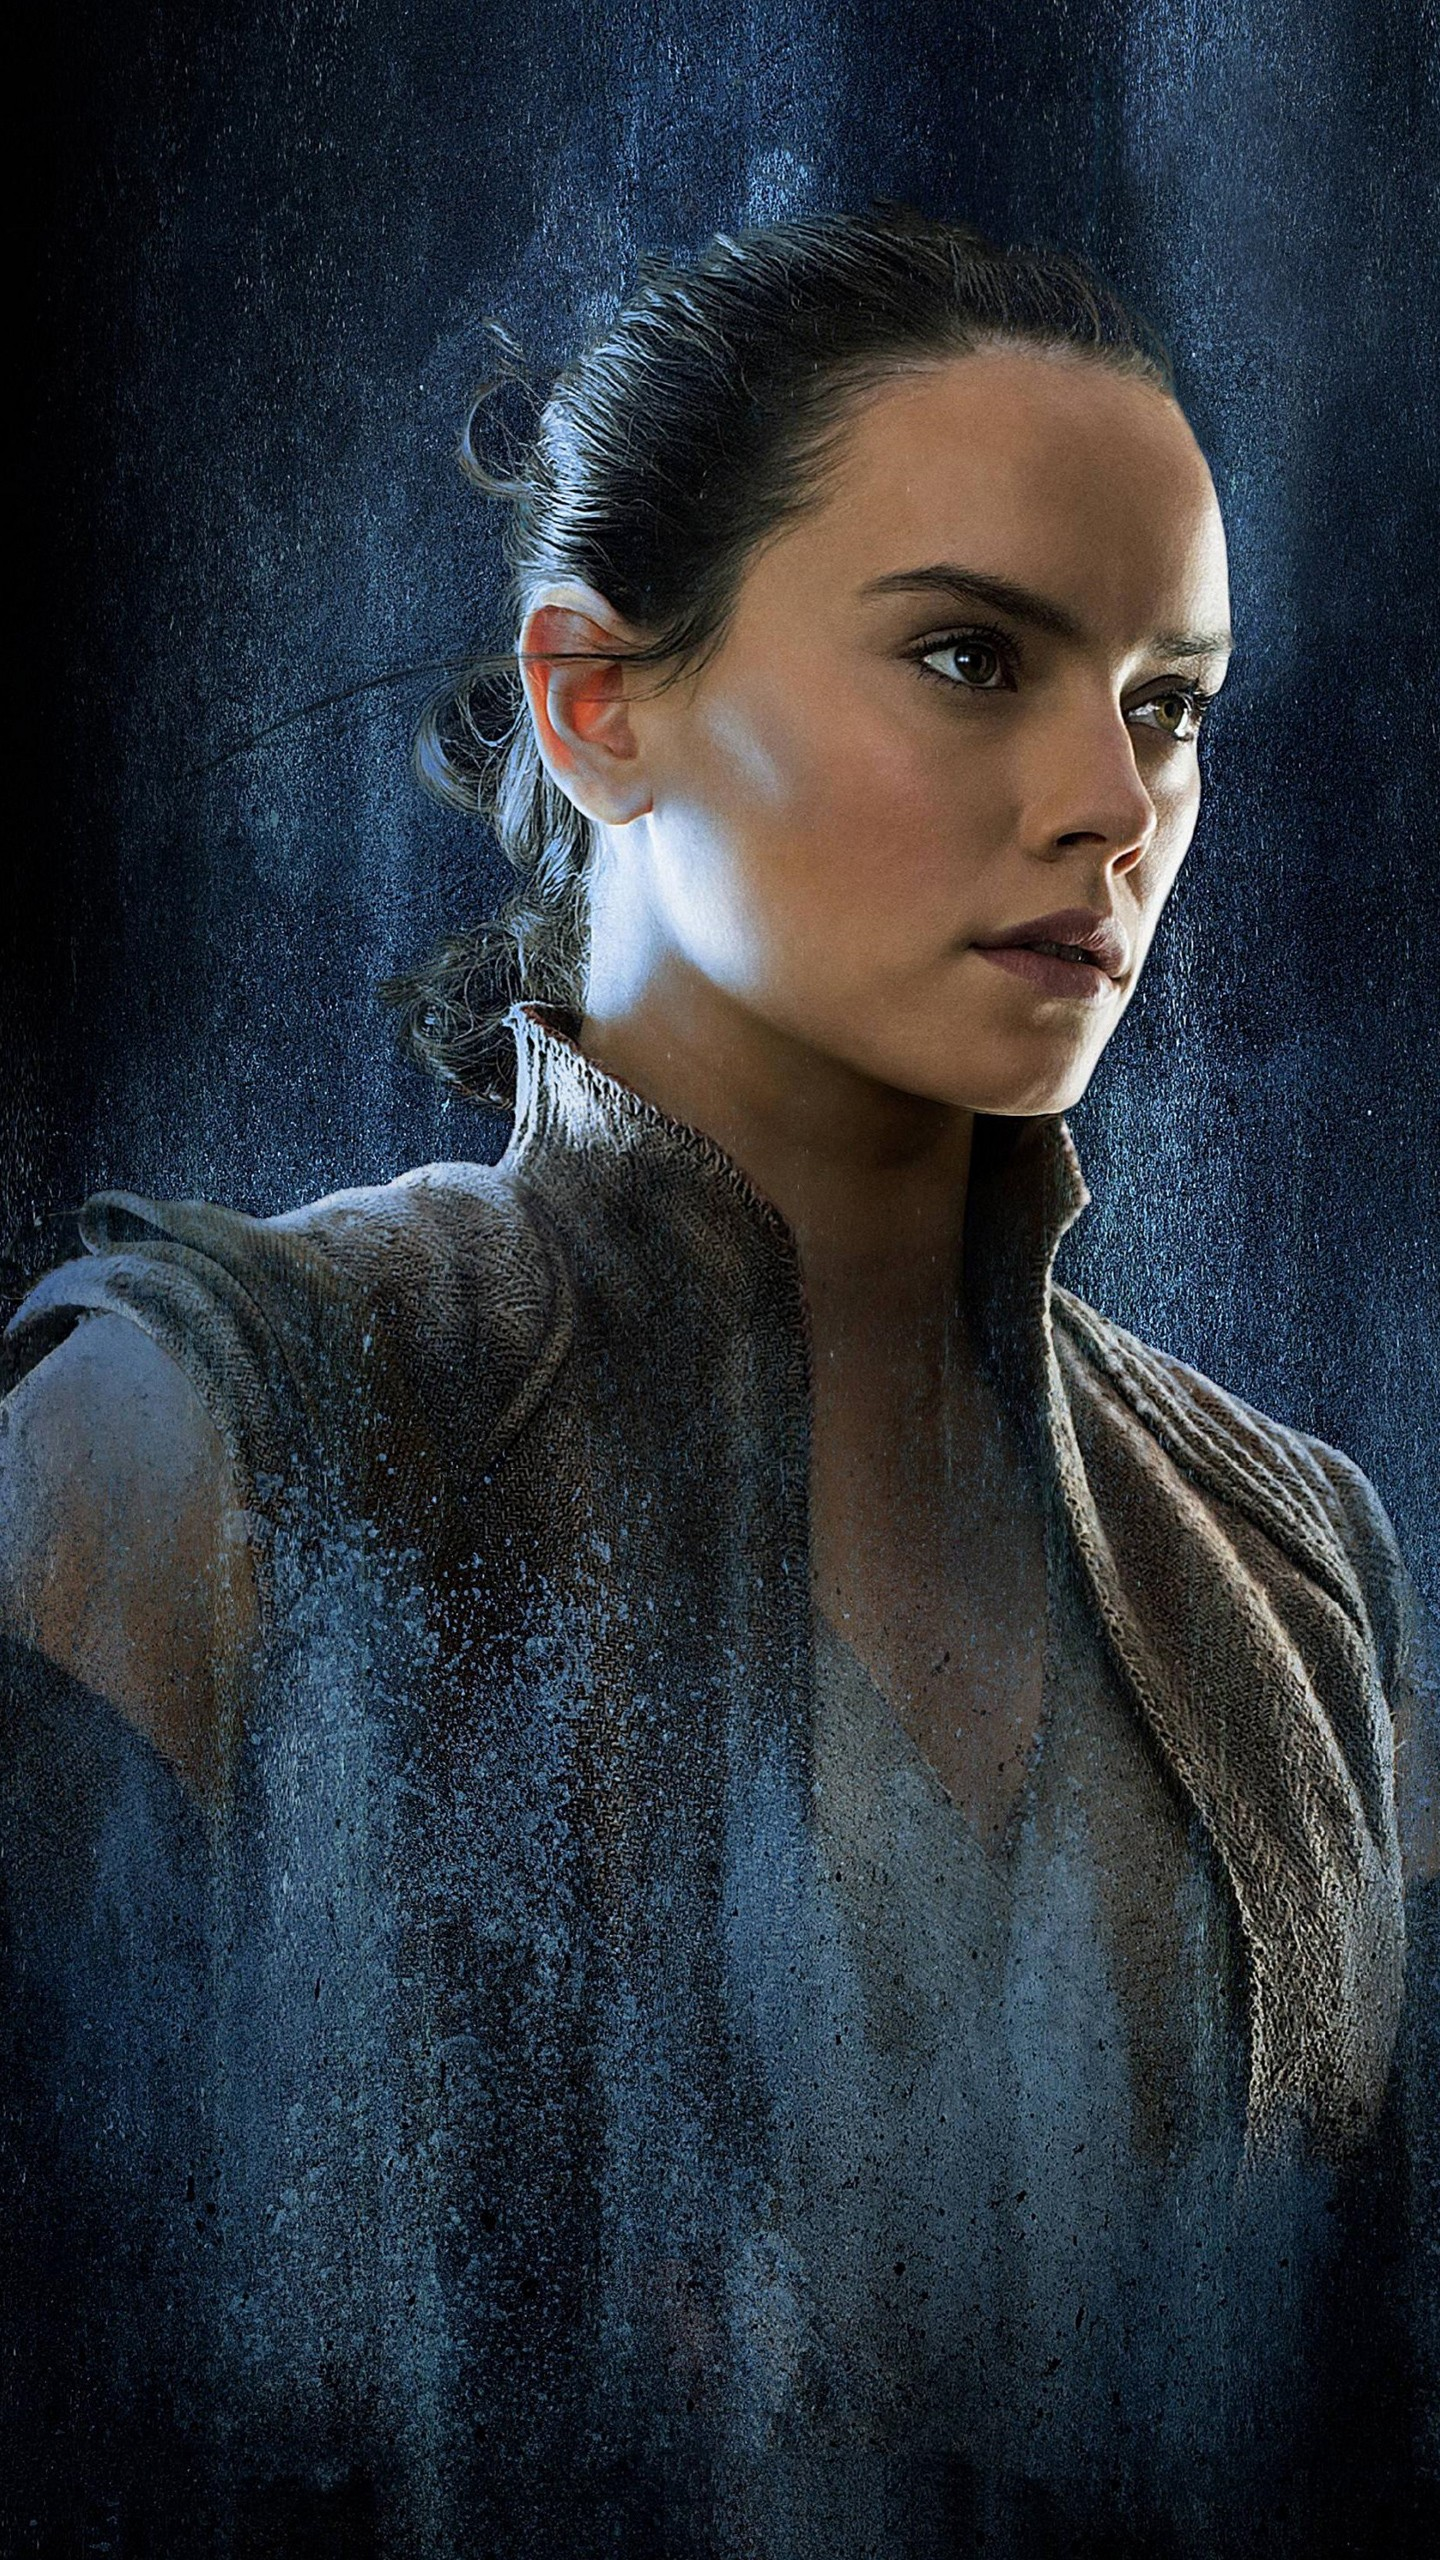 Star Wars Rey Art 1440x2560 Wallpaper Teahub Io